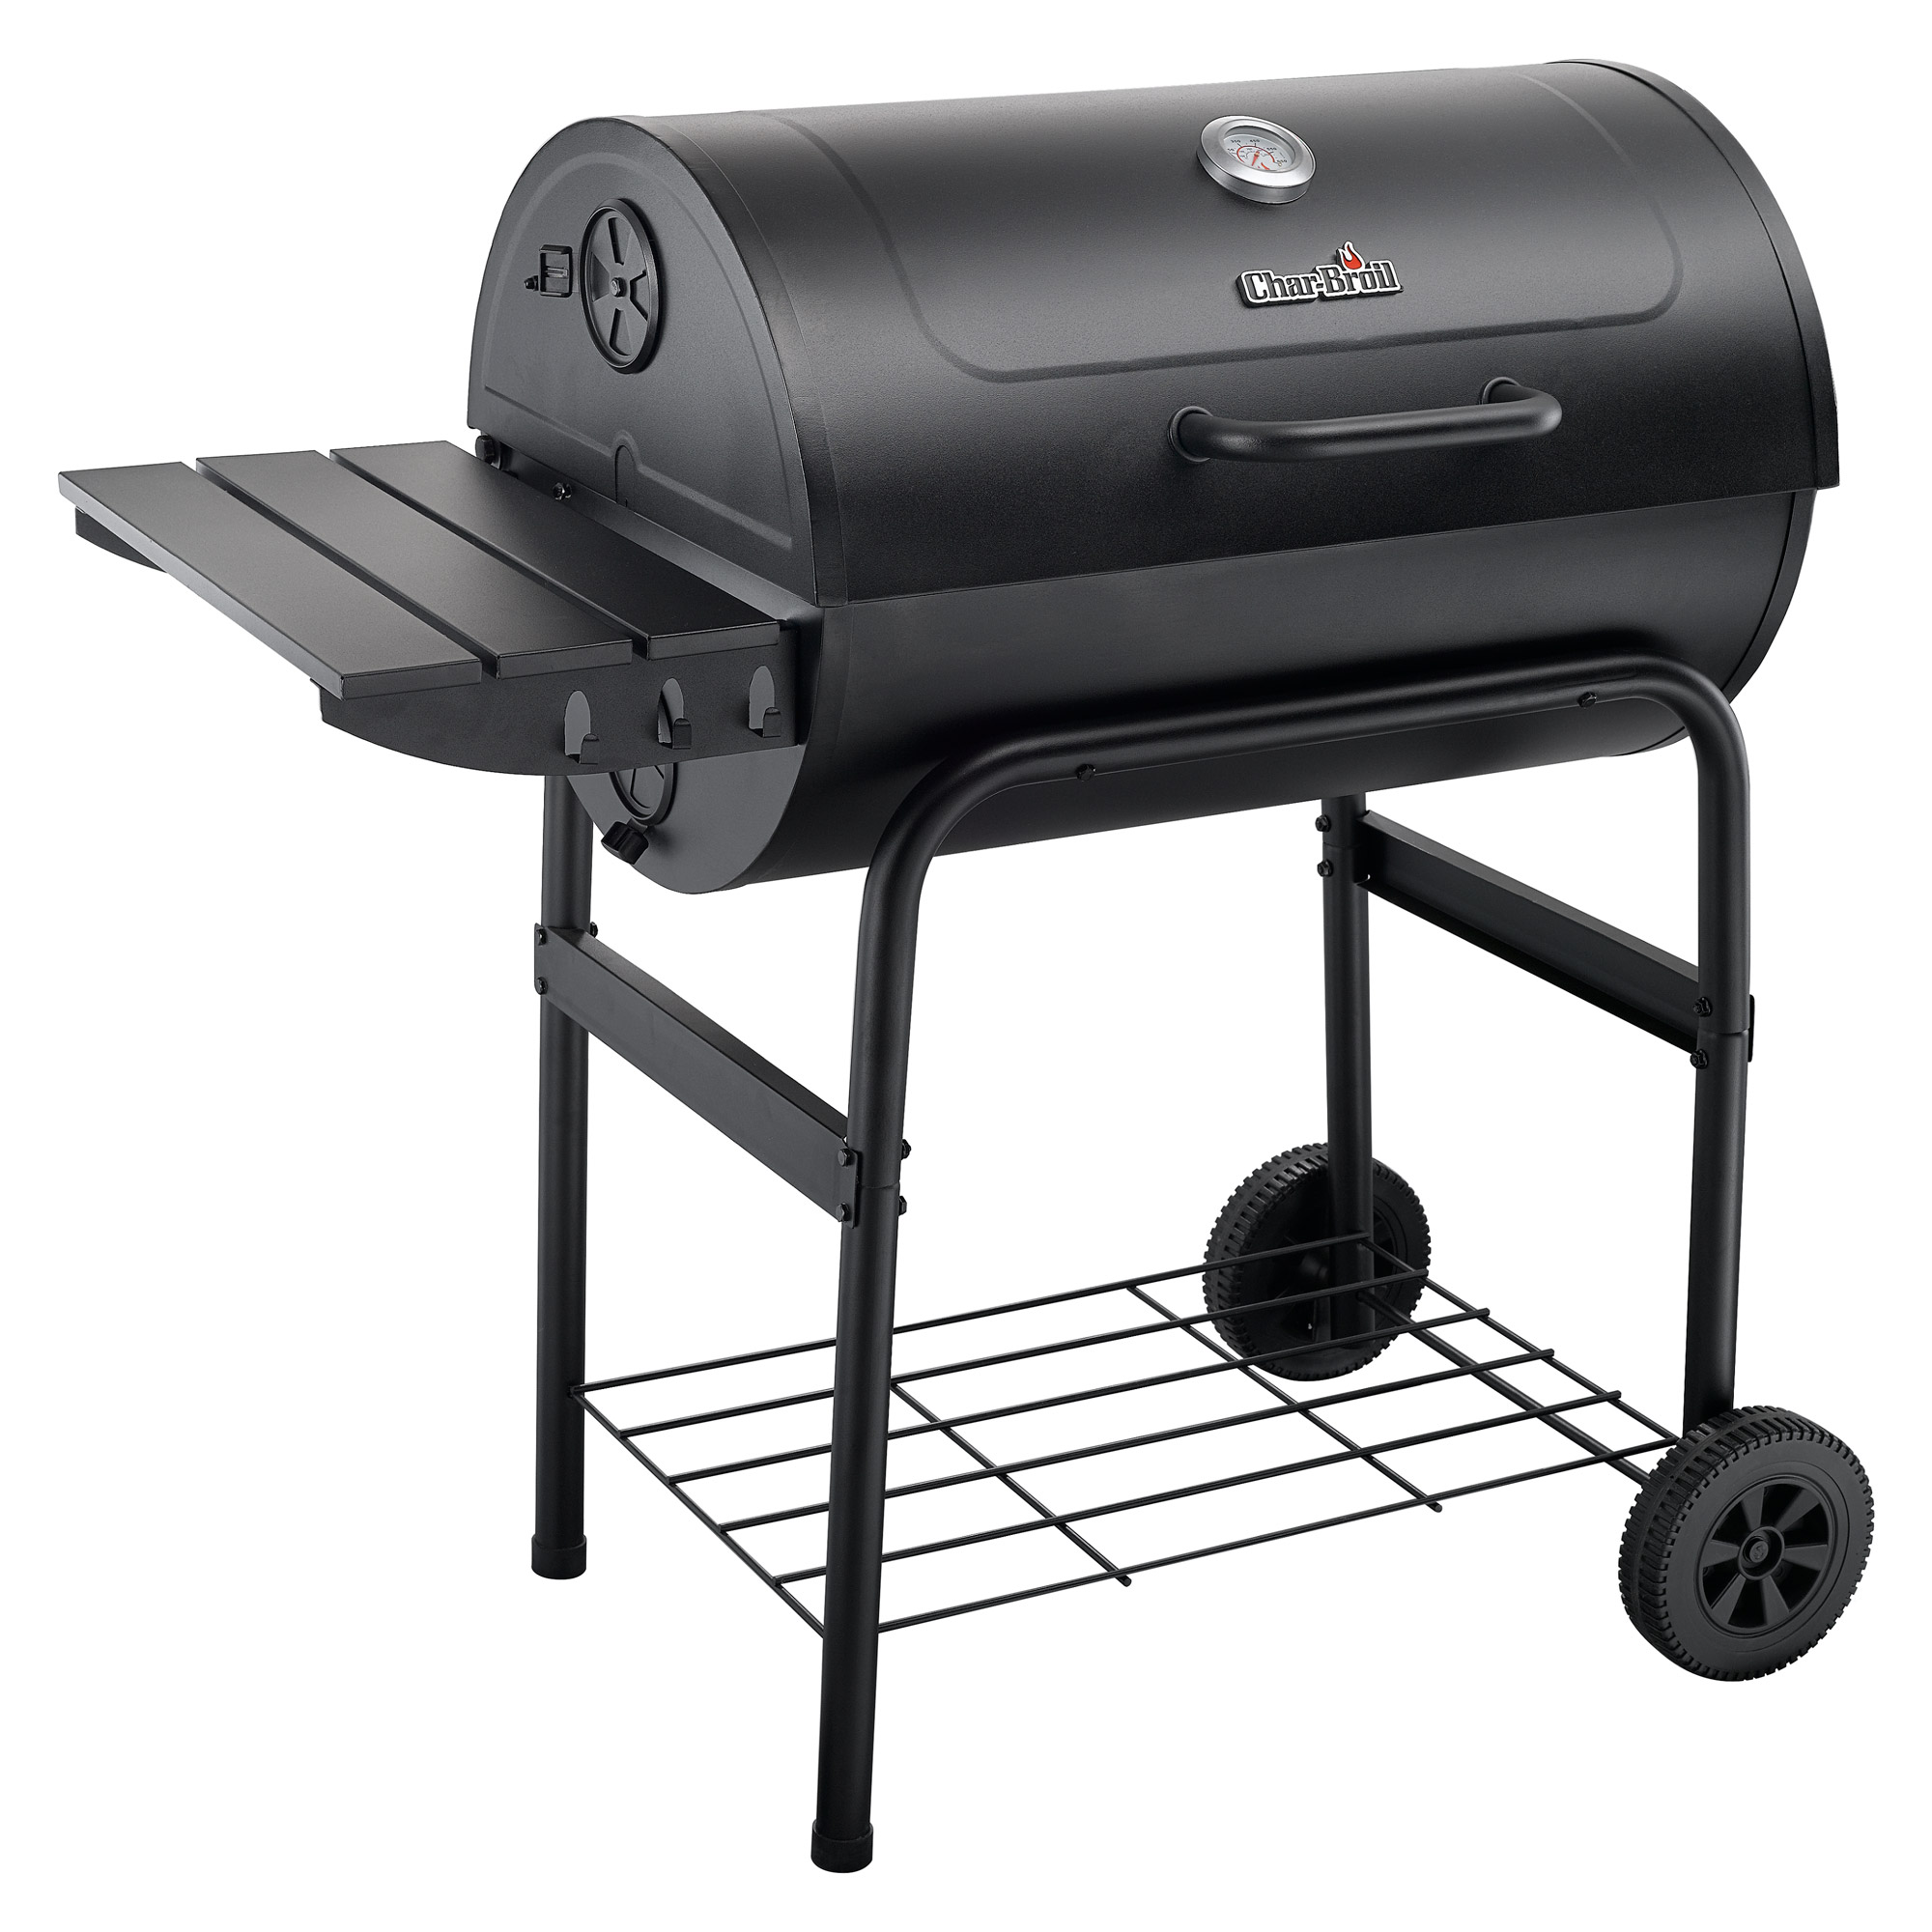 Char-Broil American Gourmet Charcoal Grill 840 by Charcoal Grills